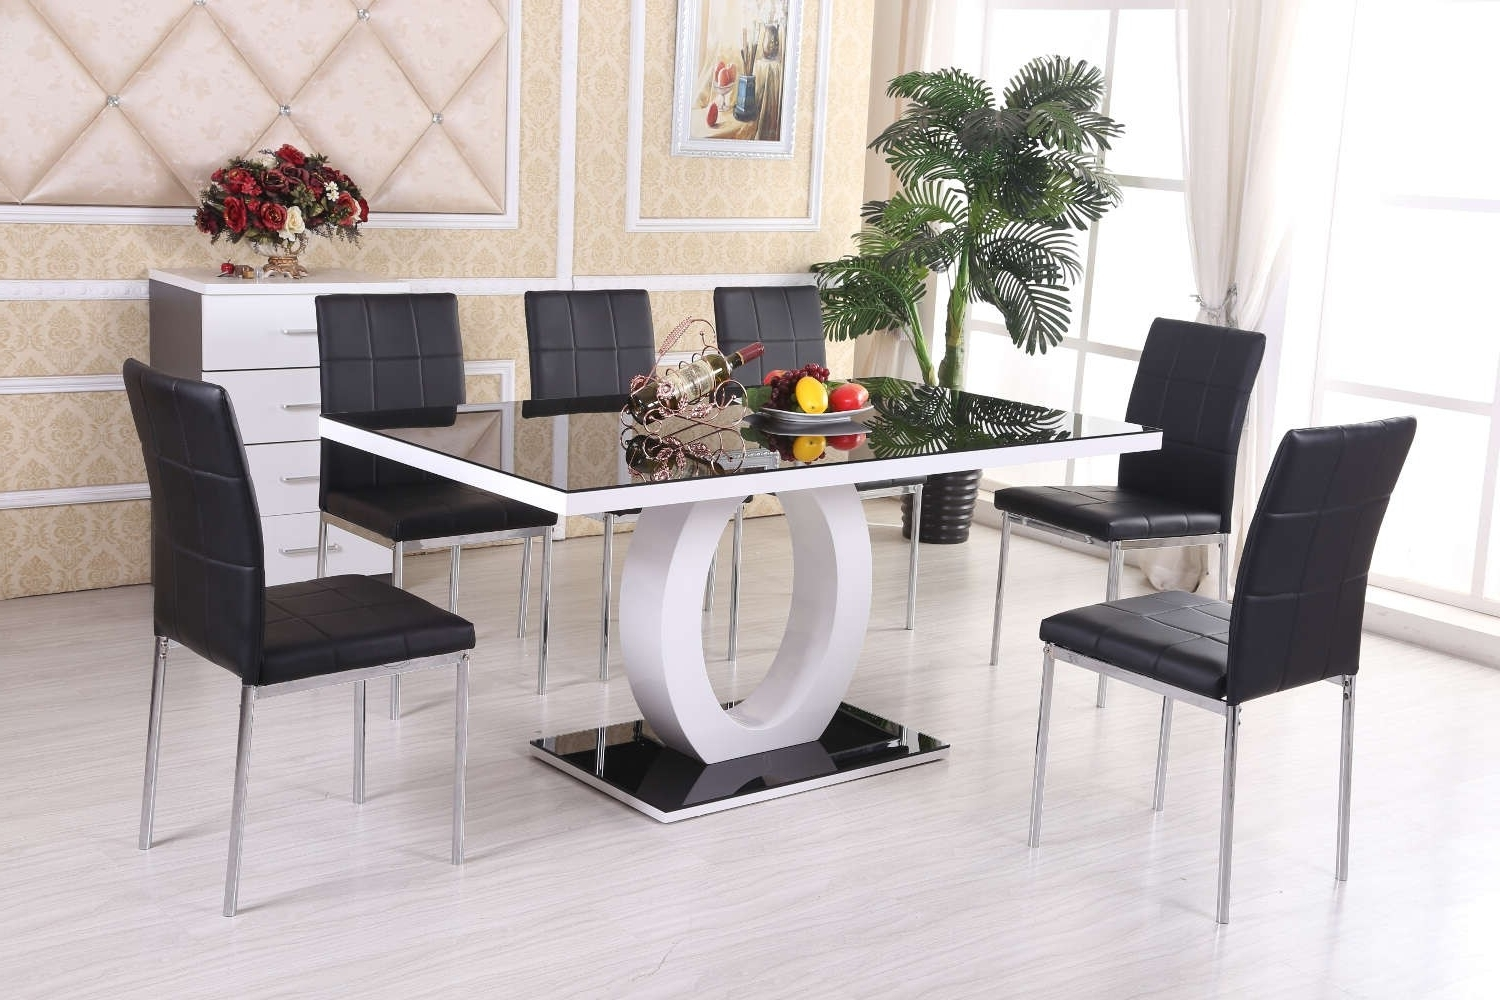 Black Glass Dining Tables And 6 Chairs Intended For Famous Dining Table Set With 6 Chairs – Castrophotos (View 21 of 25)